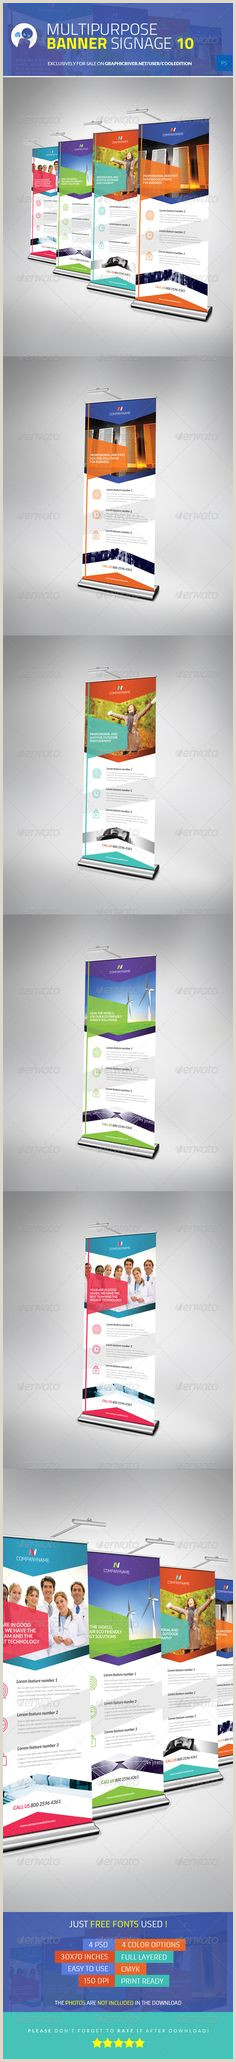 Postupstand Coupon Code 60 Trade Show Banners Ideas